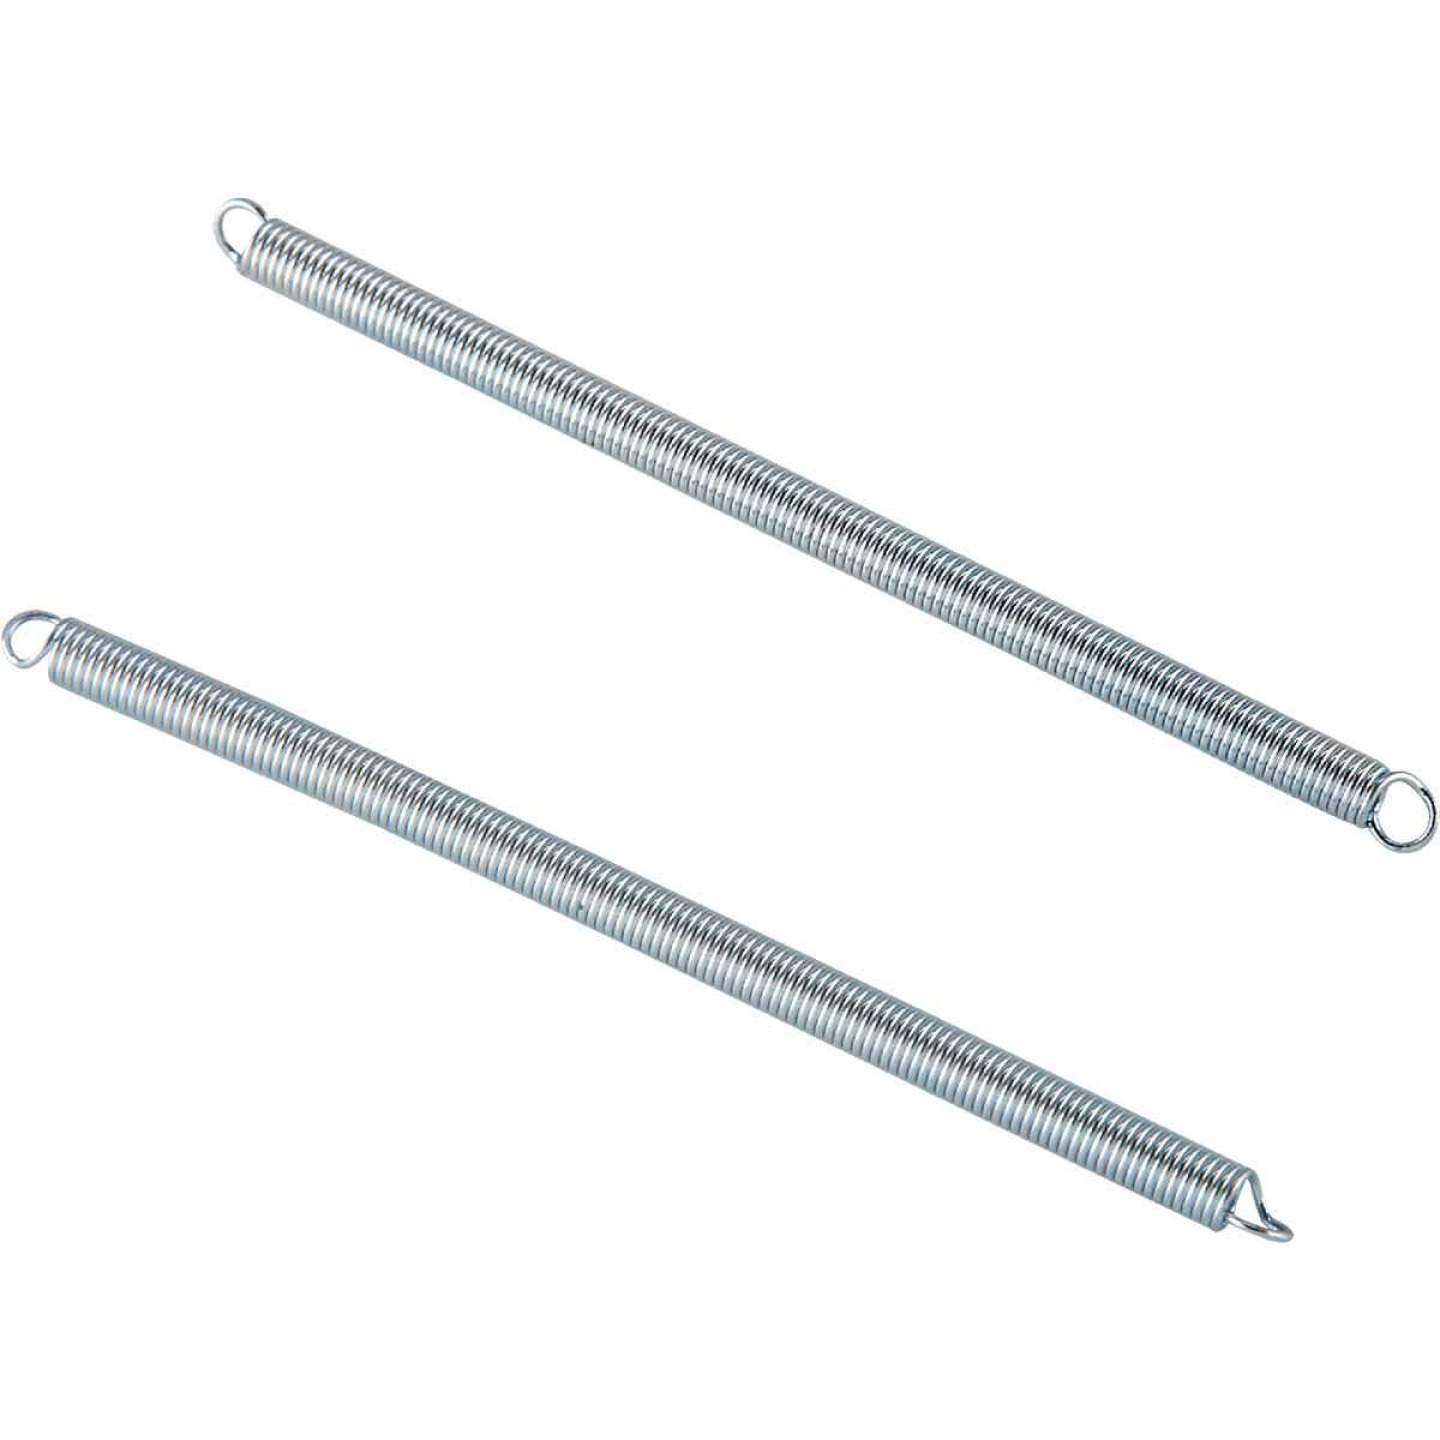 Century Spring 4-1/2 In. x 1/2 In. Extension Spring (2 Count) Image 1